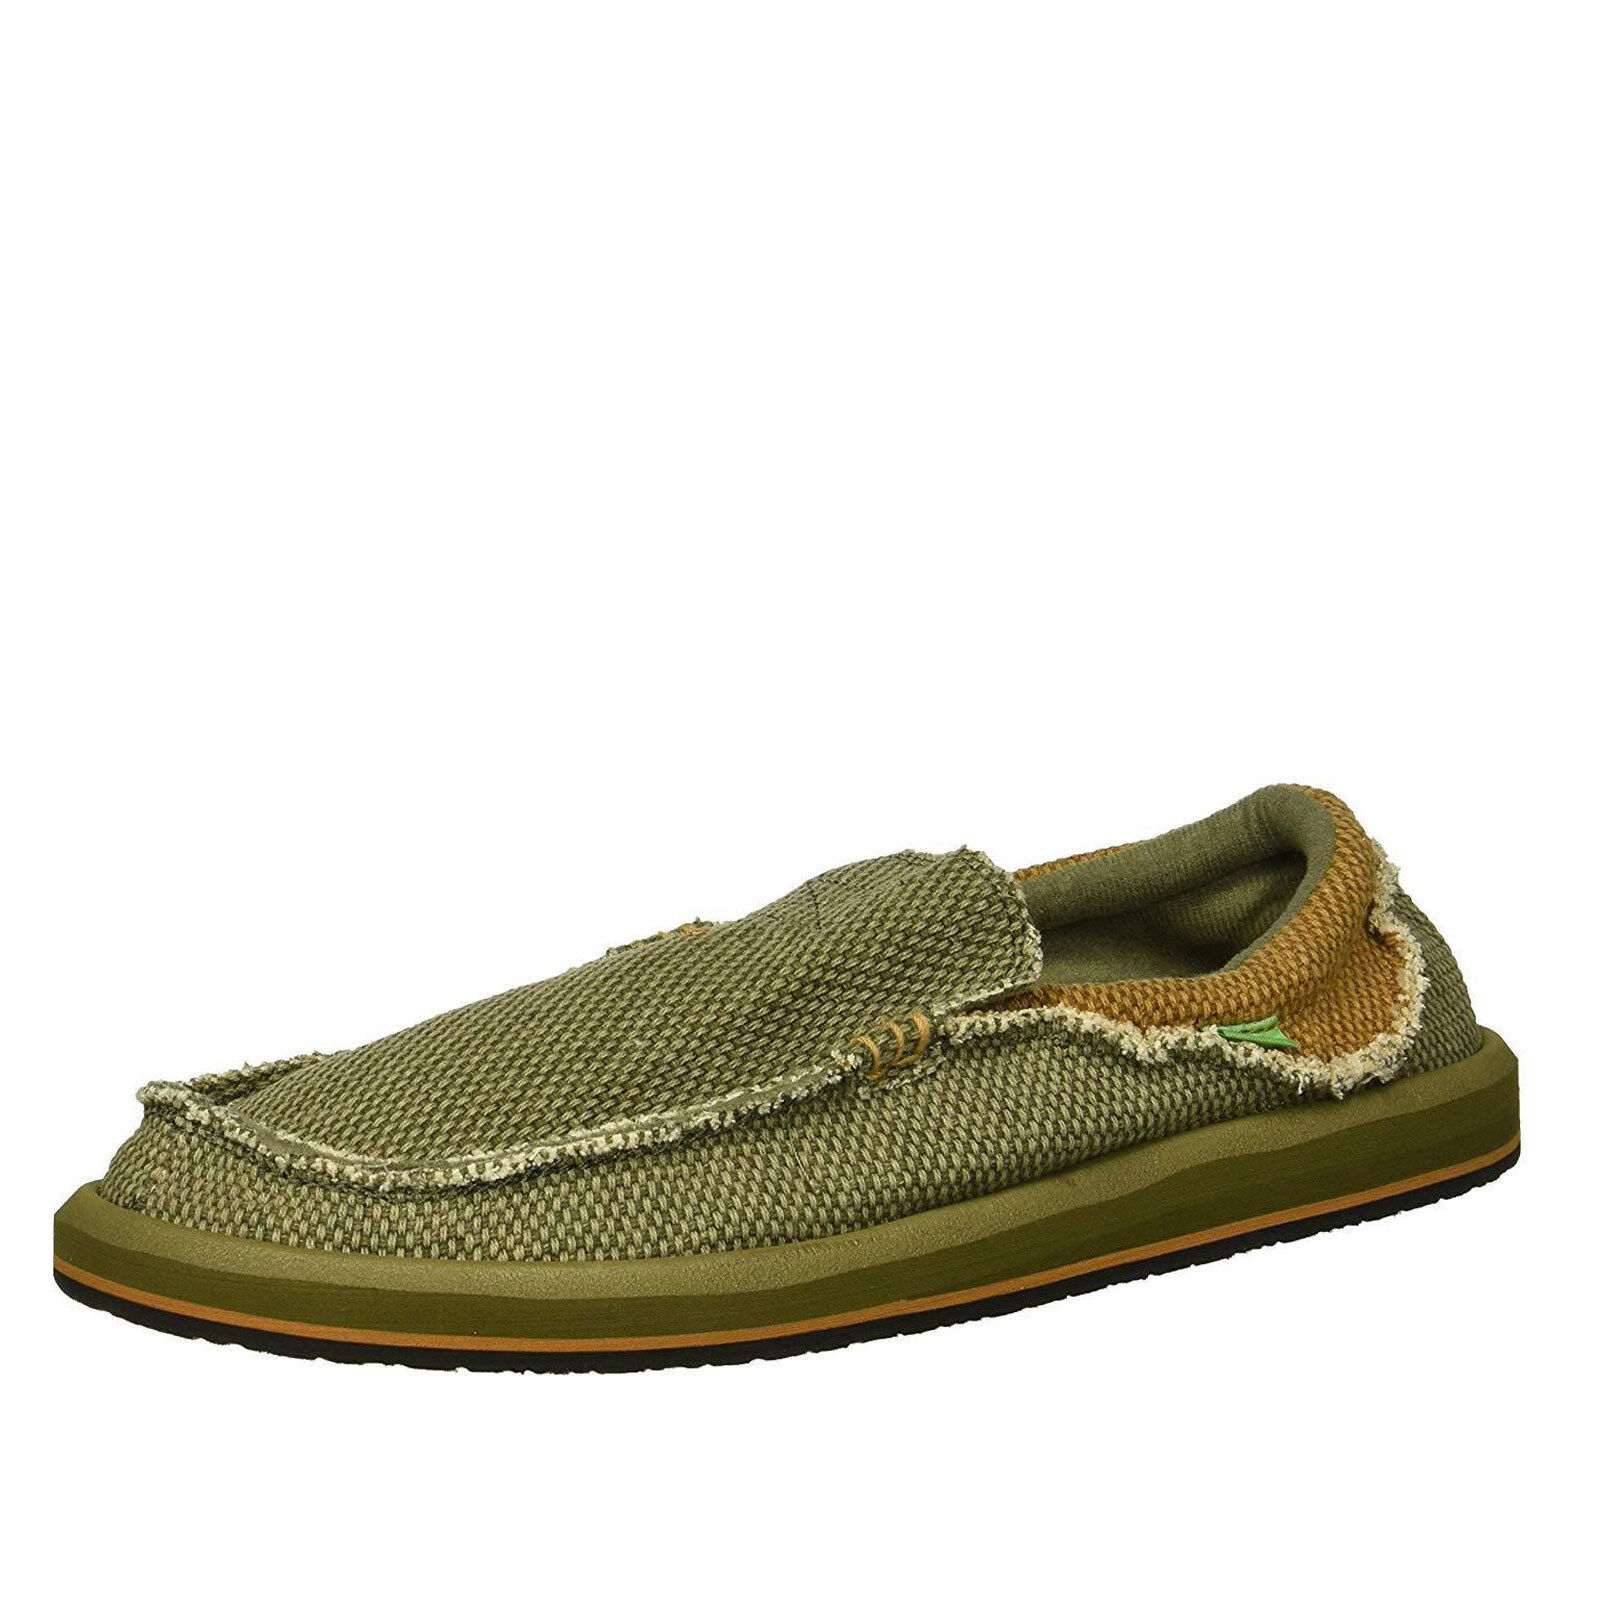 Sanuk Chiba Army Green/Brown Men's Slip On Sidewalk Surfers SMF1047